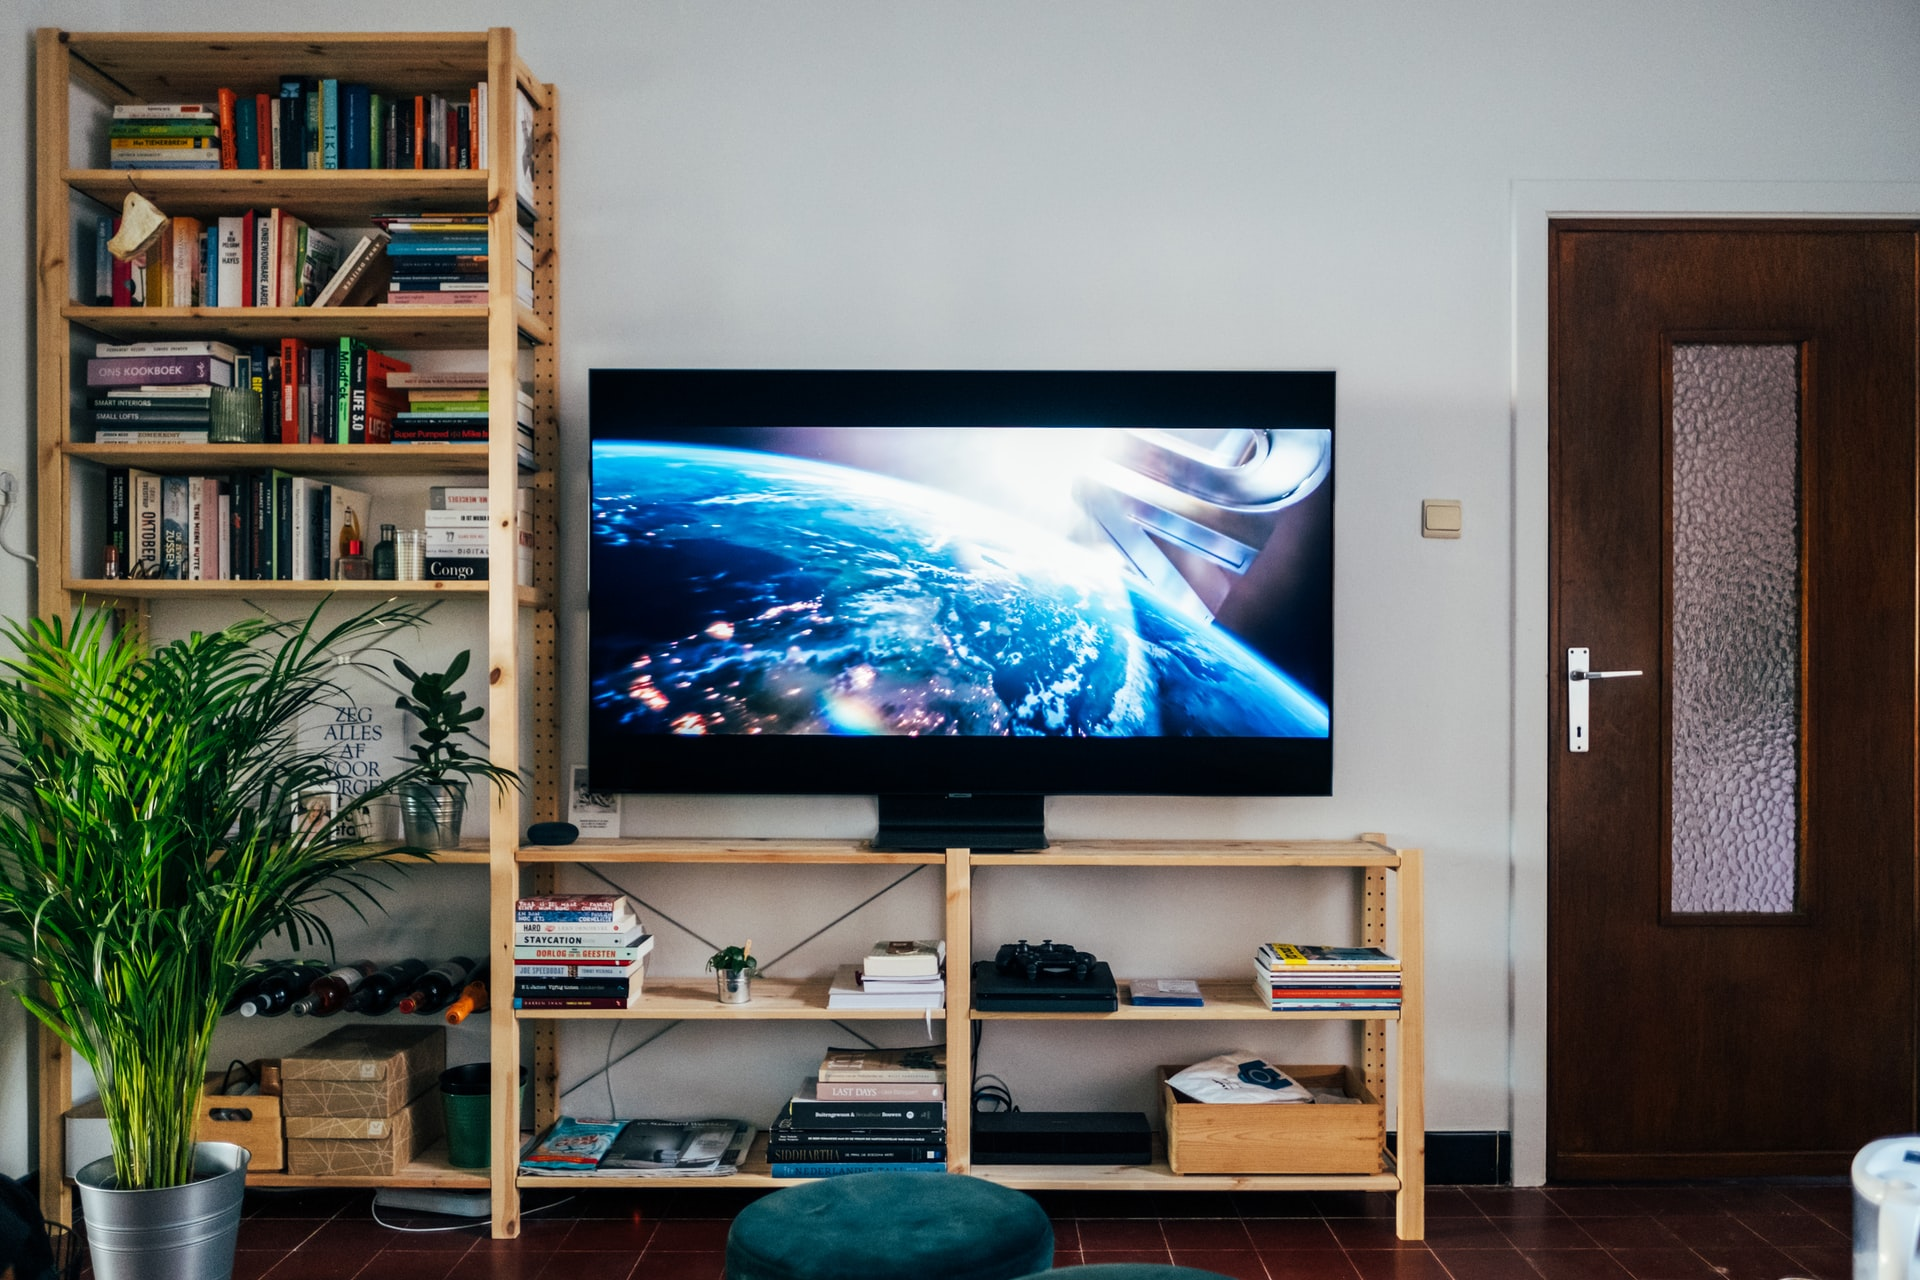 Accessories Enhancing Television Watching Header Image